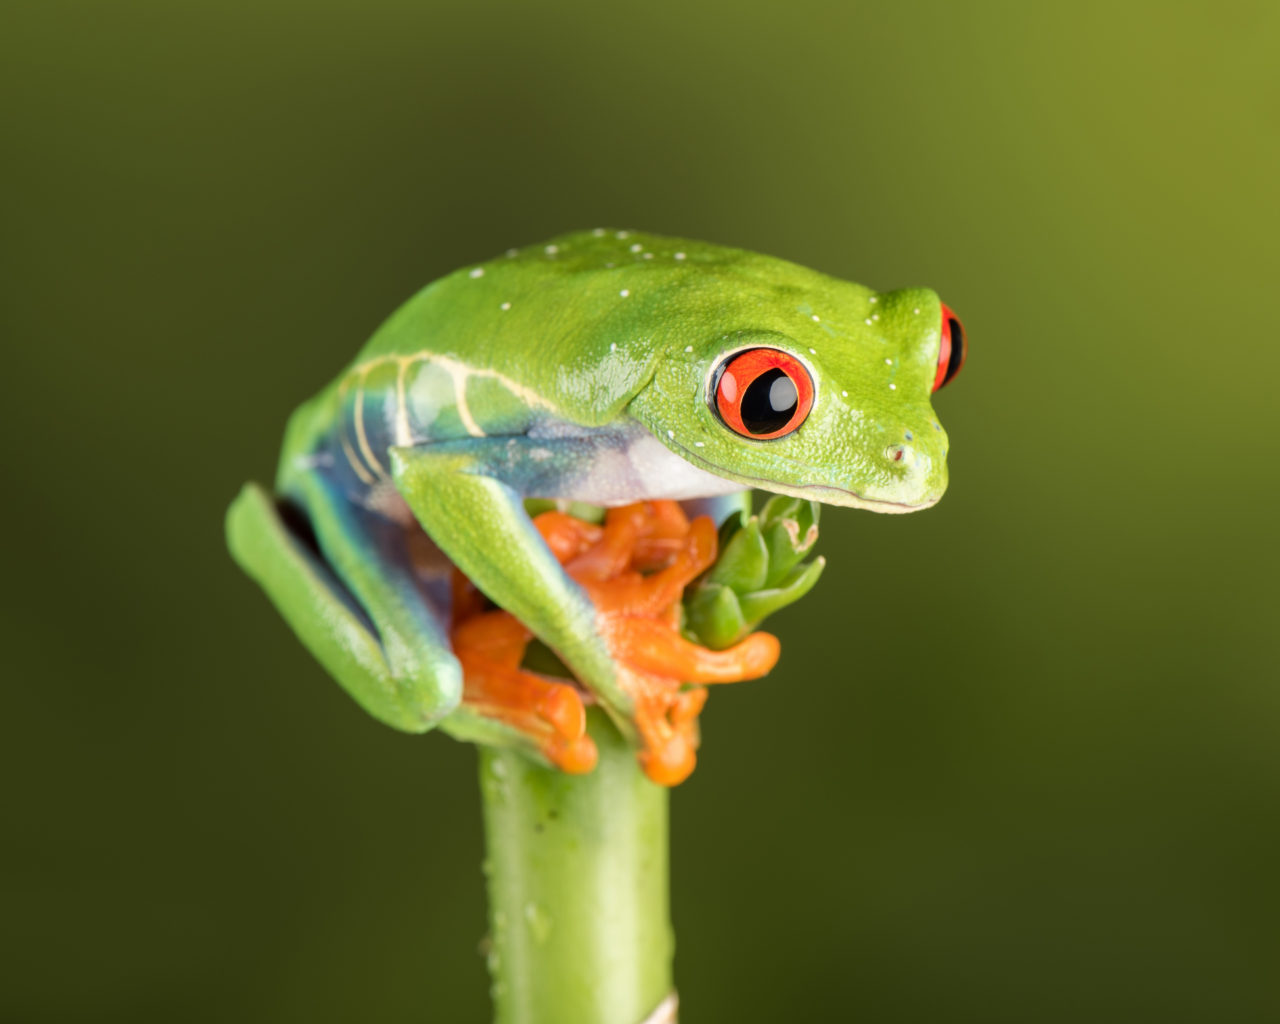 Iphone X Wallpaper Stock Hd Red Eye Tree Frog Where Next Wallpapers13 Com